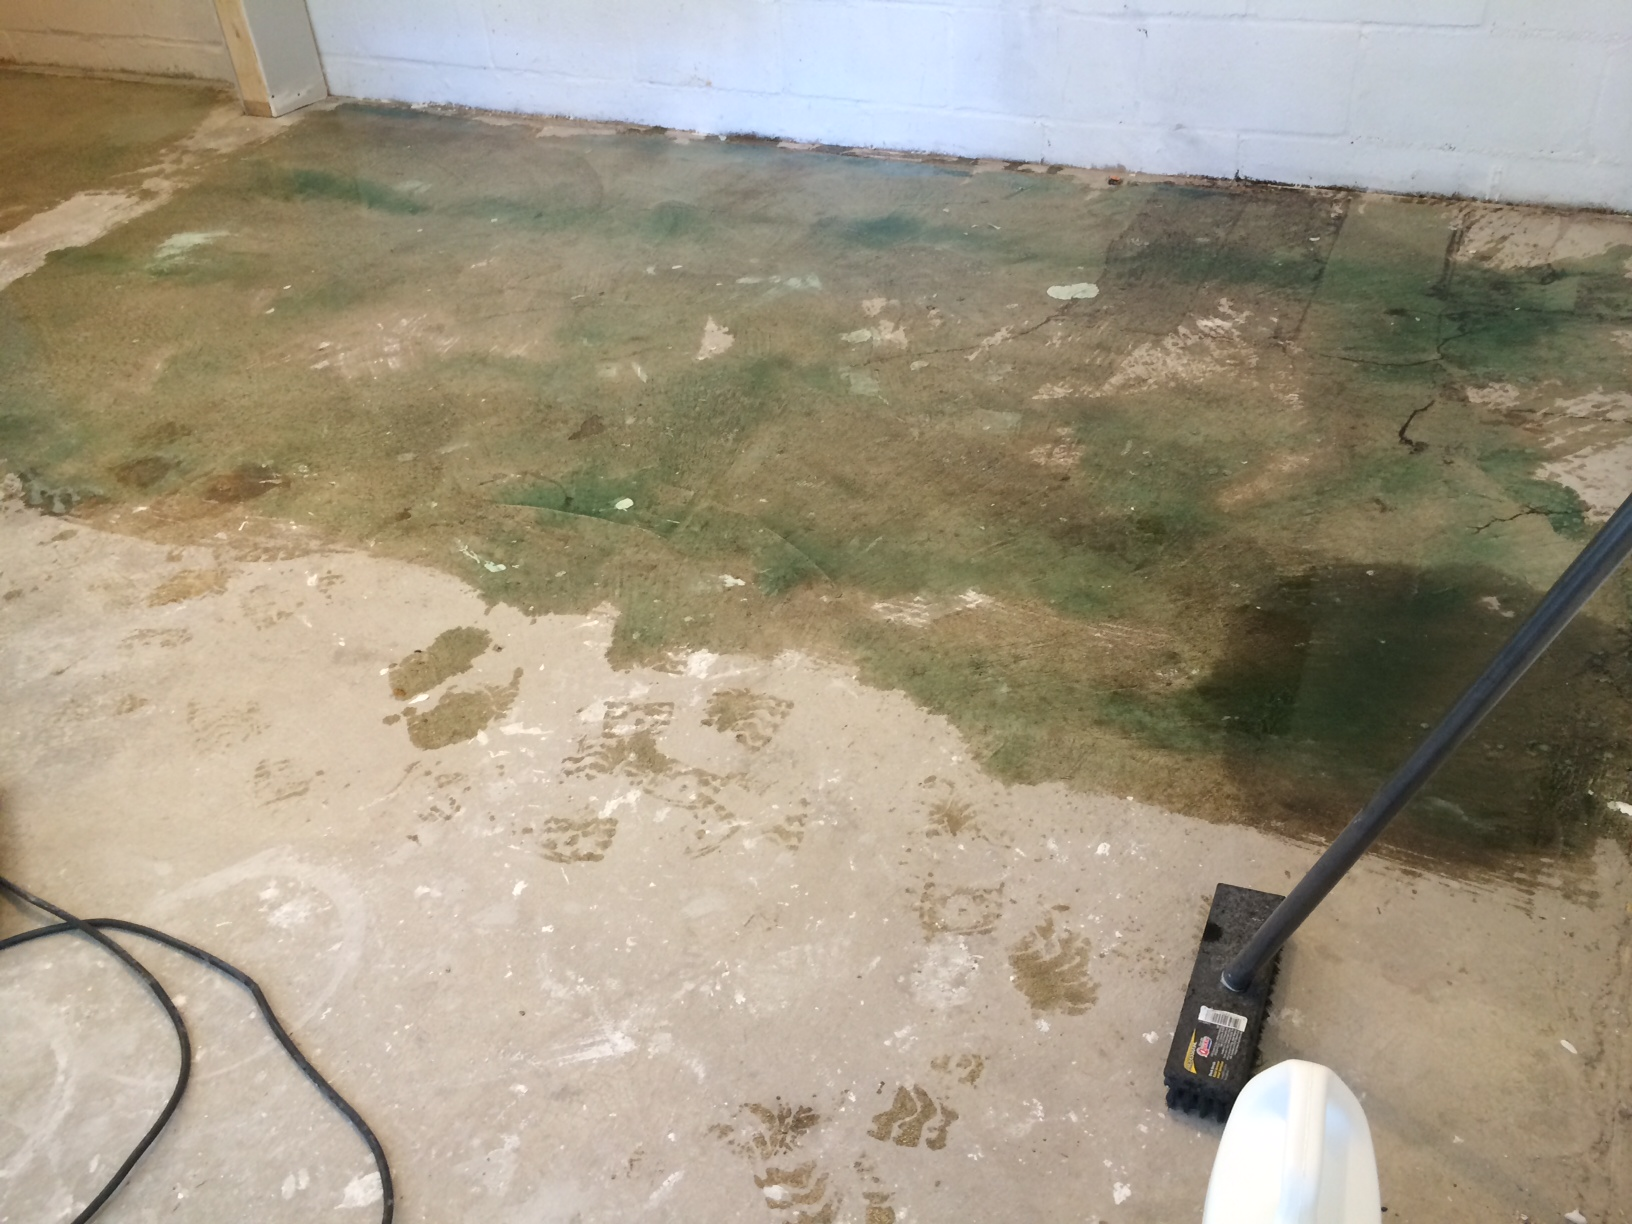 The sludge that I used to clean the floor. Although I would like to say it was a miracle cleaner, I dont think it really was. I think my little steal wool was the real life saver in the situation